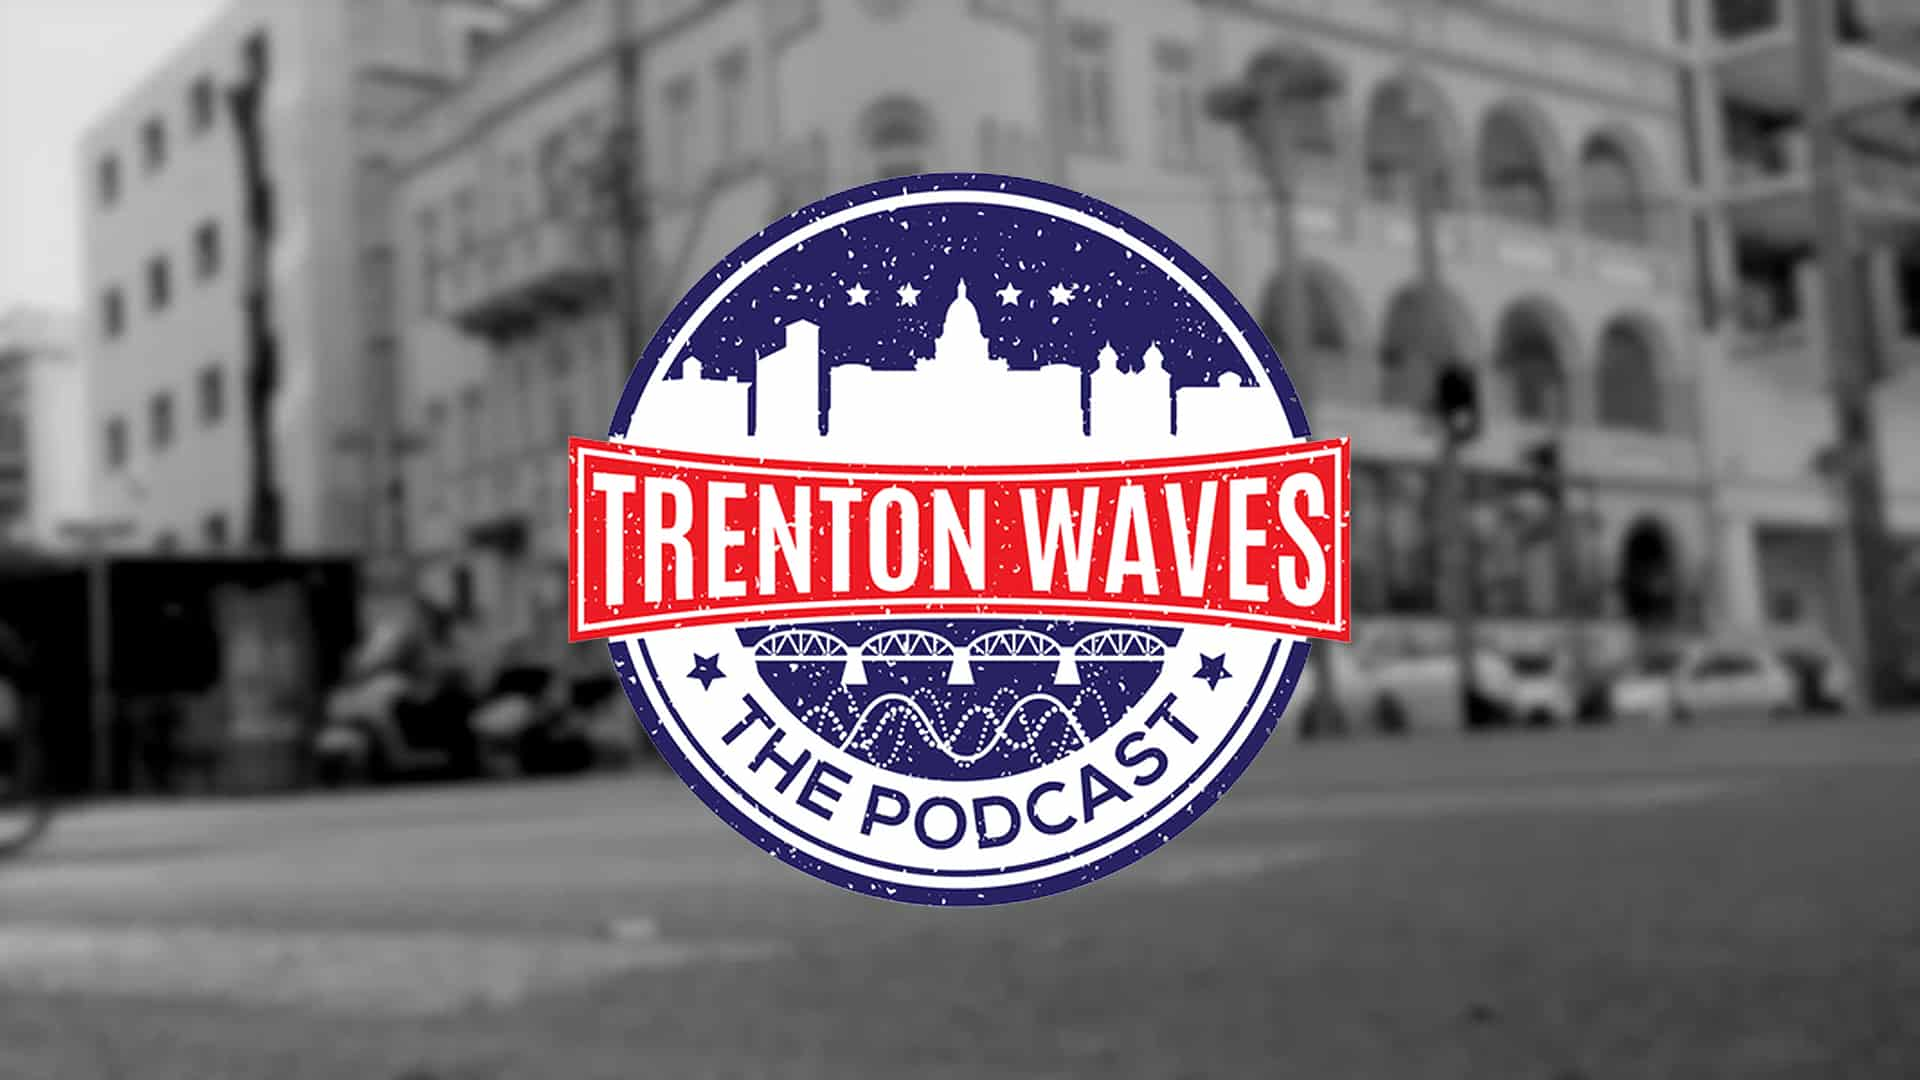 Trenton Wave Podcast hosted by Frank Sasso